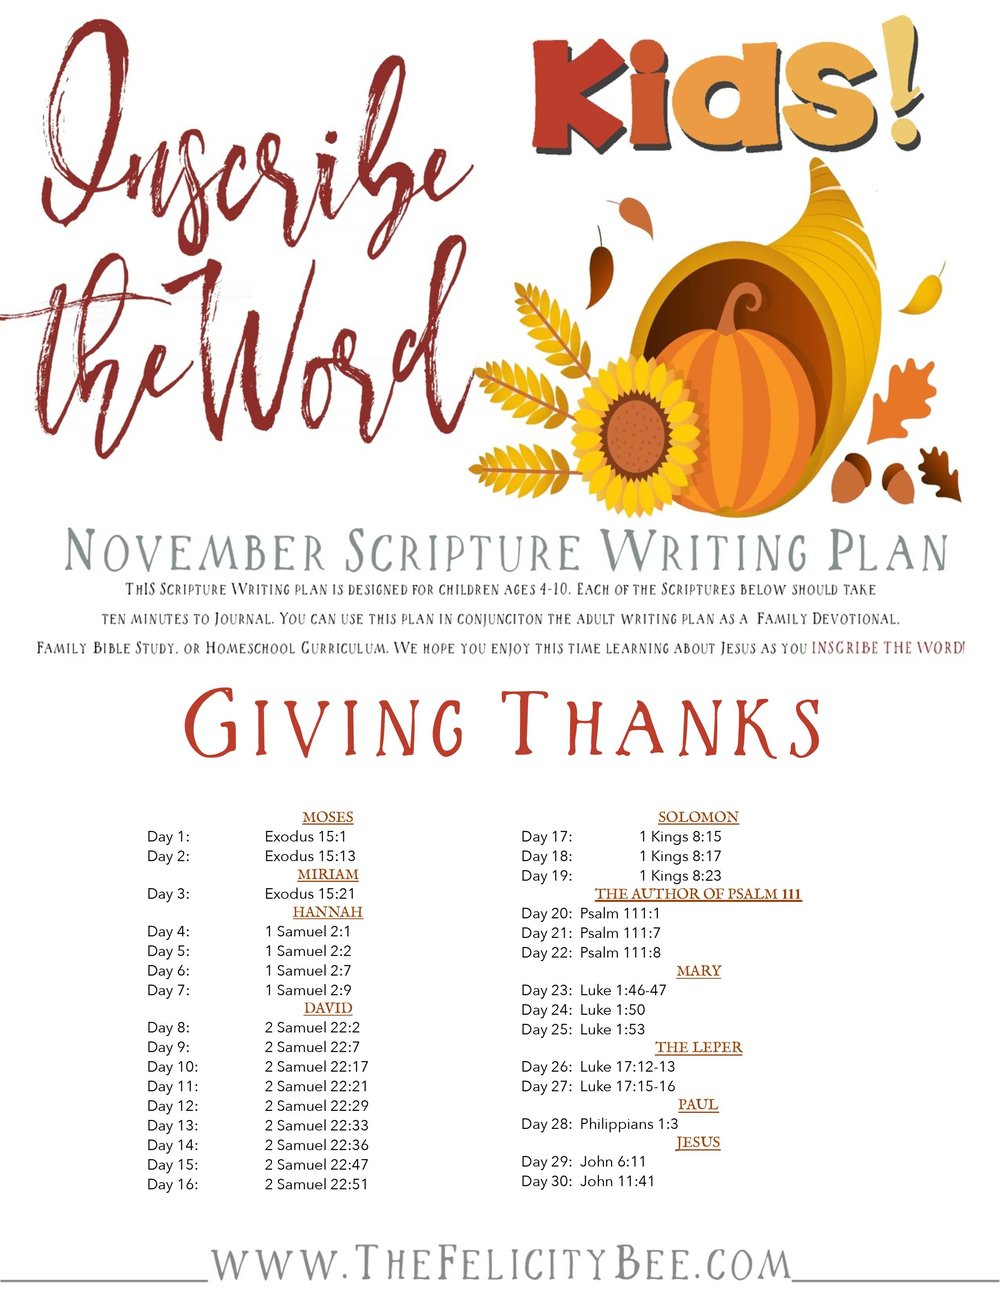 The-Felicity-Bee-Scripture-Writing-For-Kids